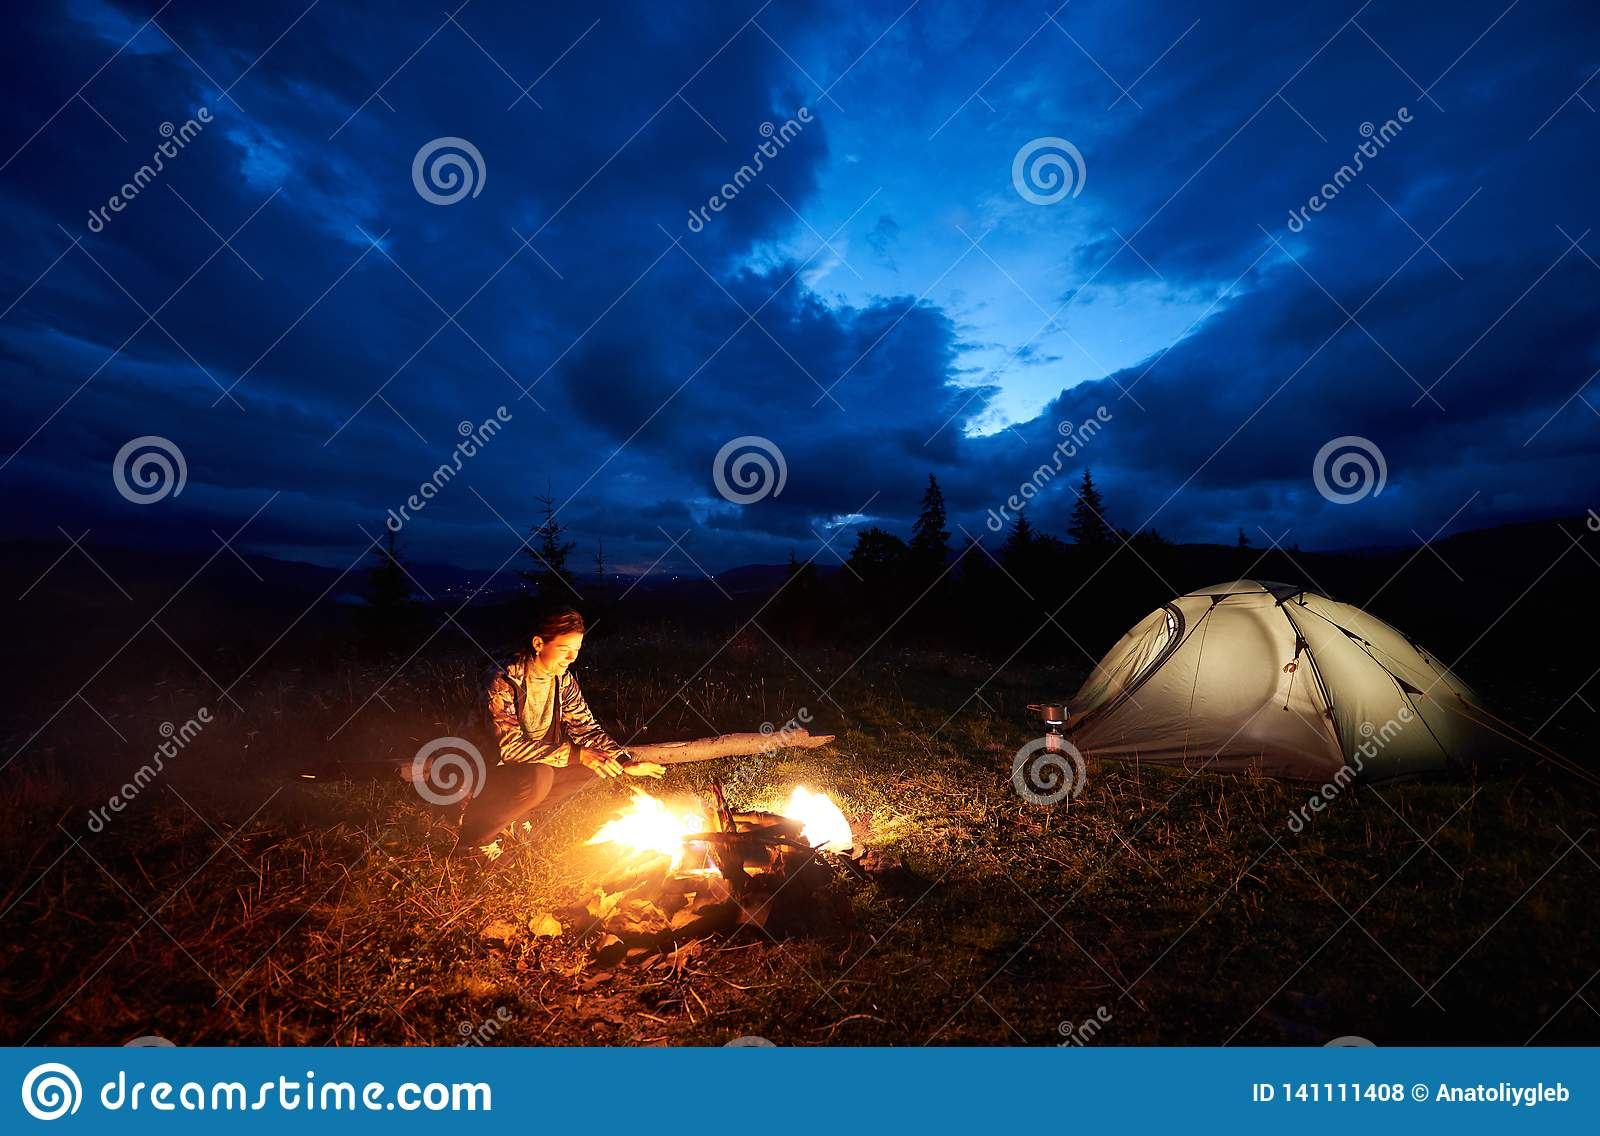 Woman tourist resting at night camping in mountains near campfire and tent under evening cloudy sky